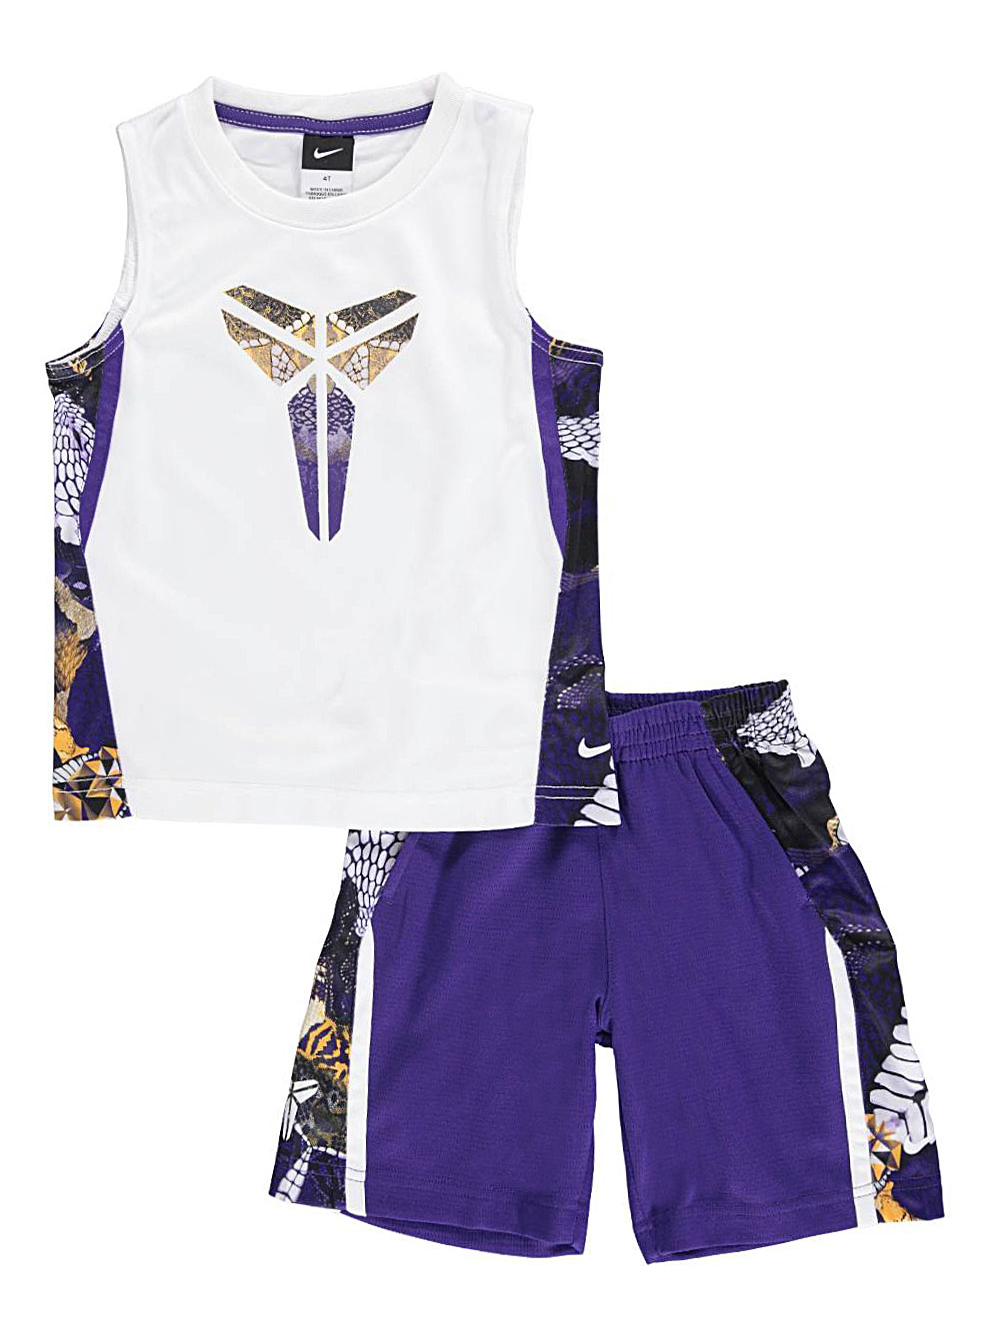 Nike Little Boys' Toddler 2-Piece Outfit (Sizes 2T - 4T)